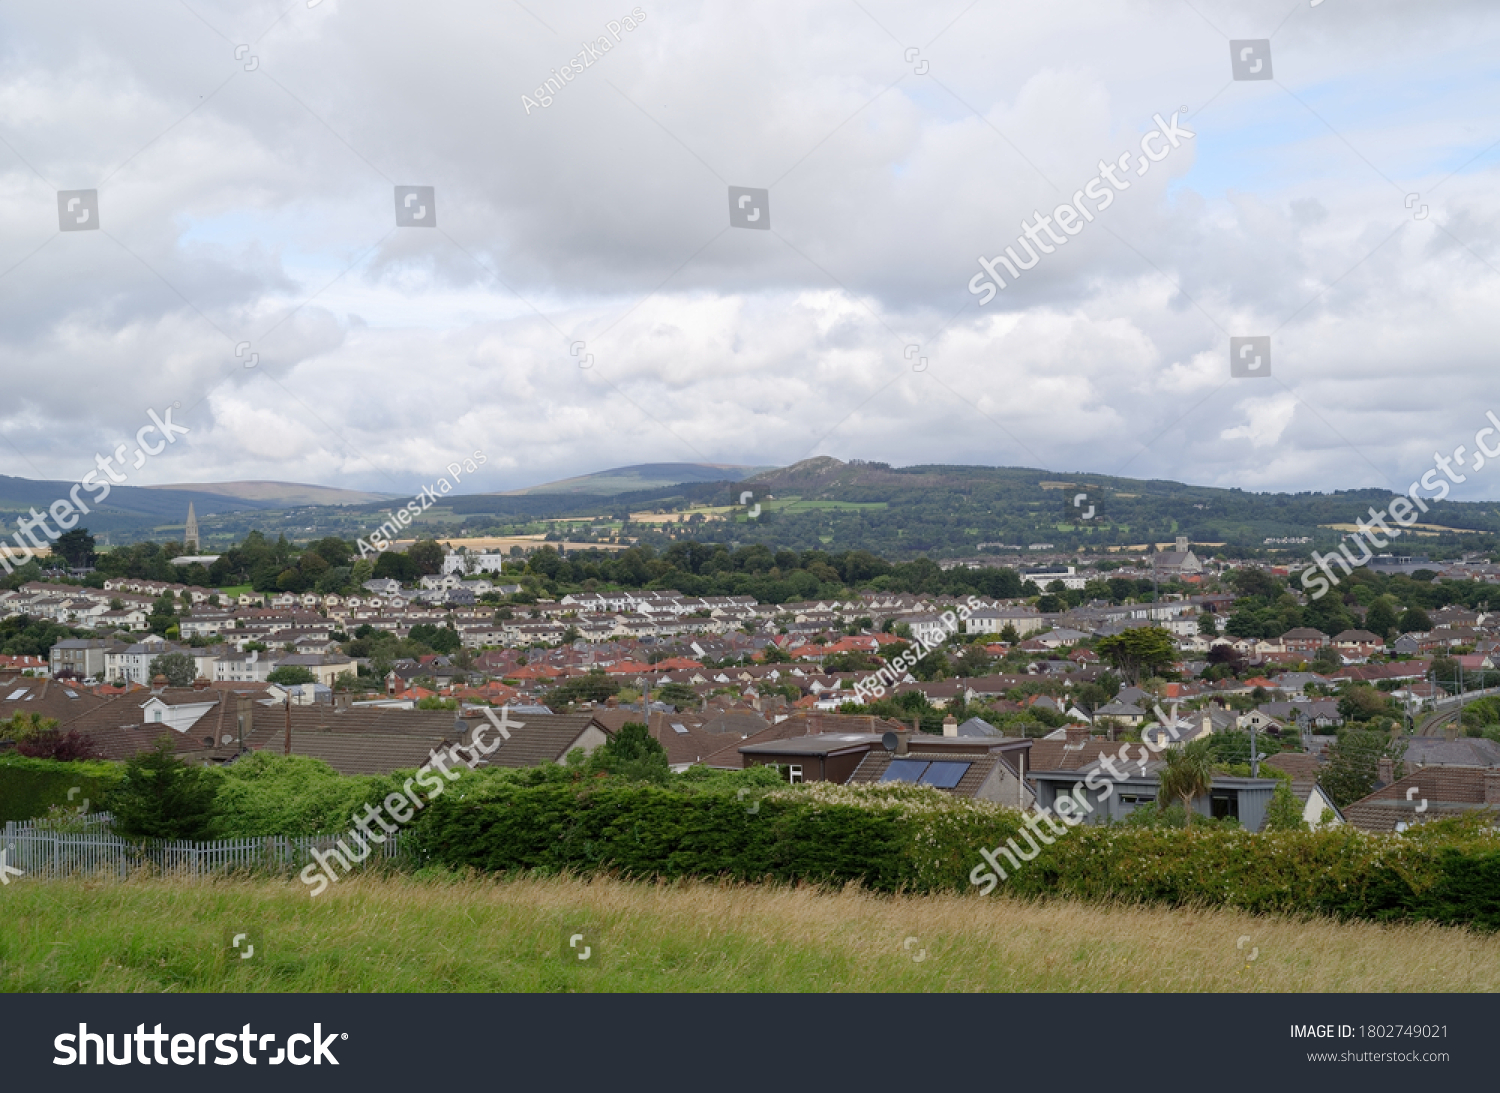 View of Bray town in County Wicklow, Ireland, on cloudy summer day. Town surrounded by mountains. View from the hill. Landscape with roof tops.